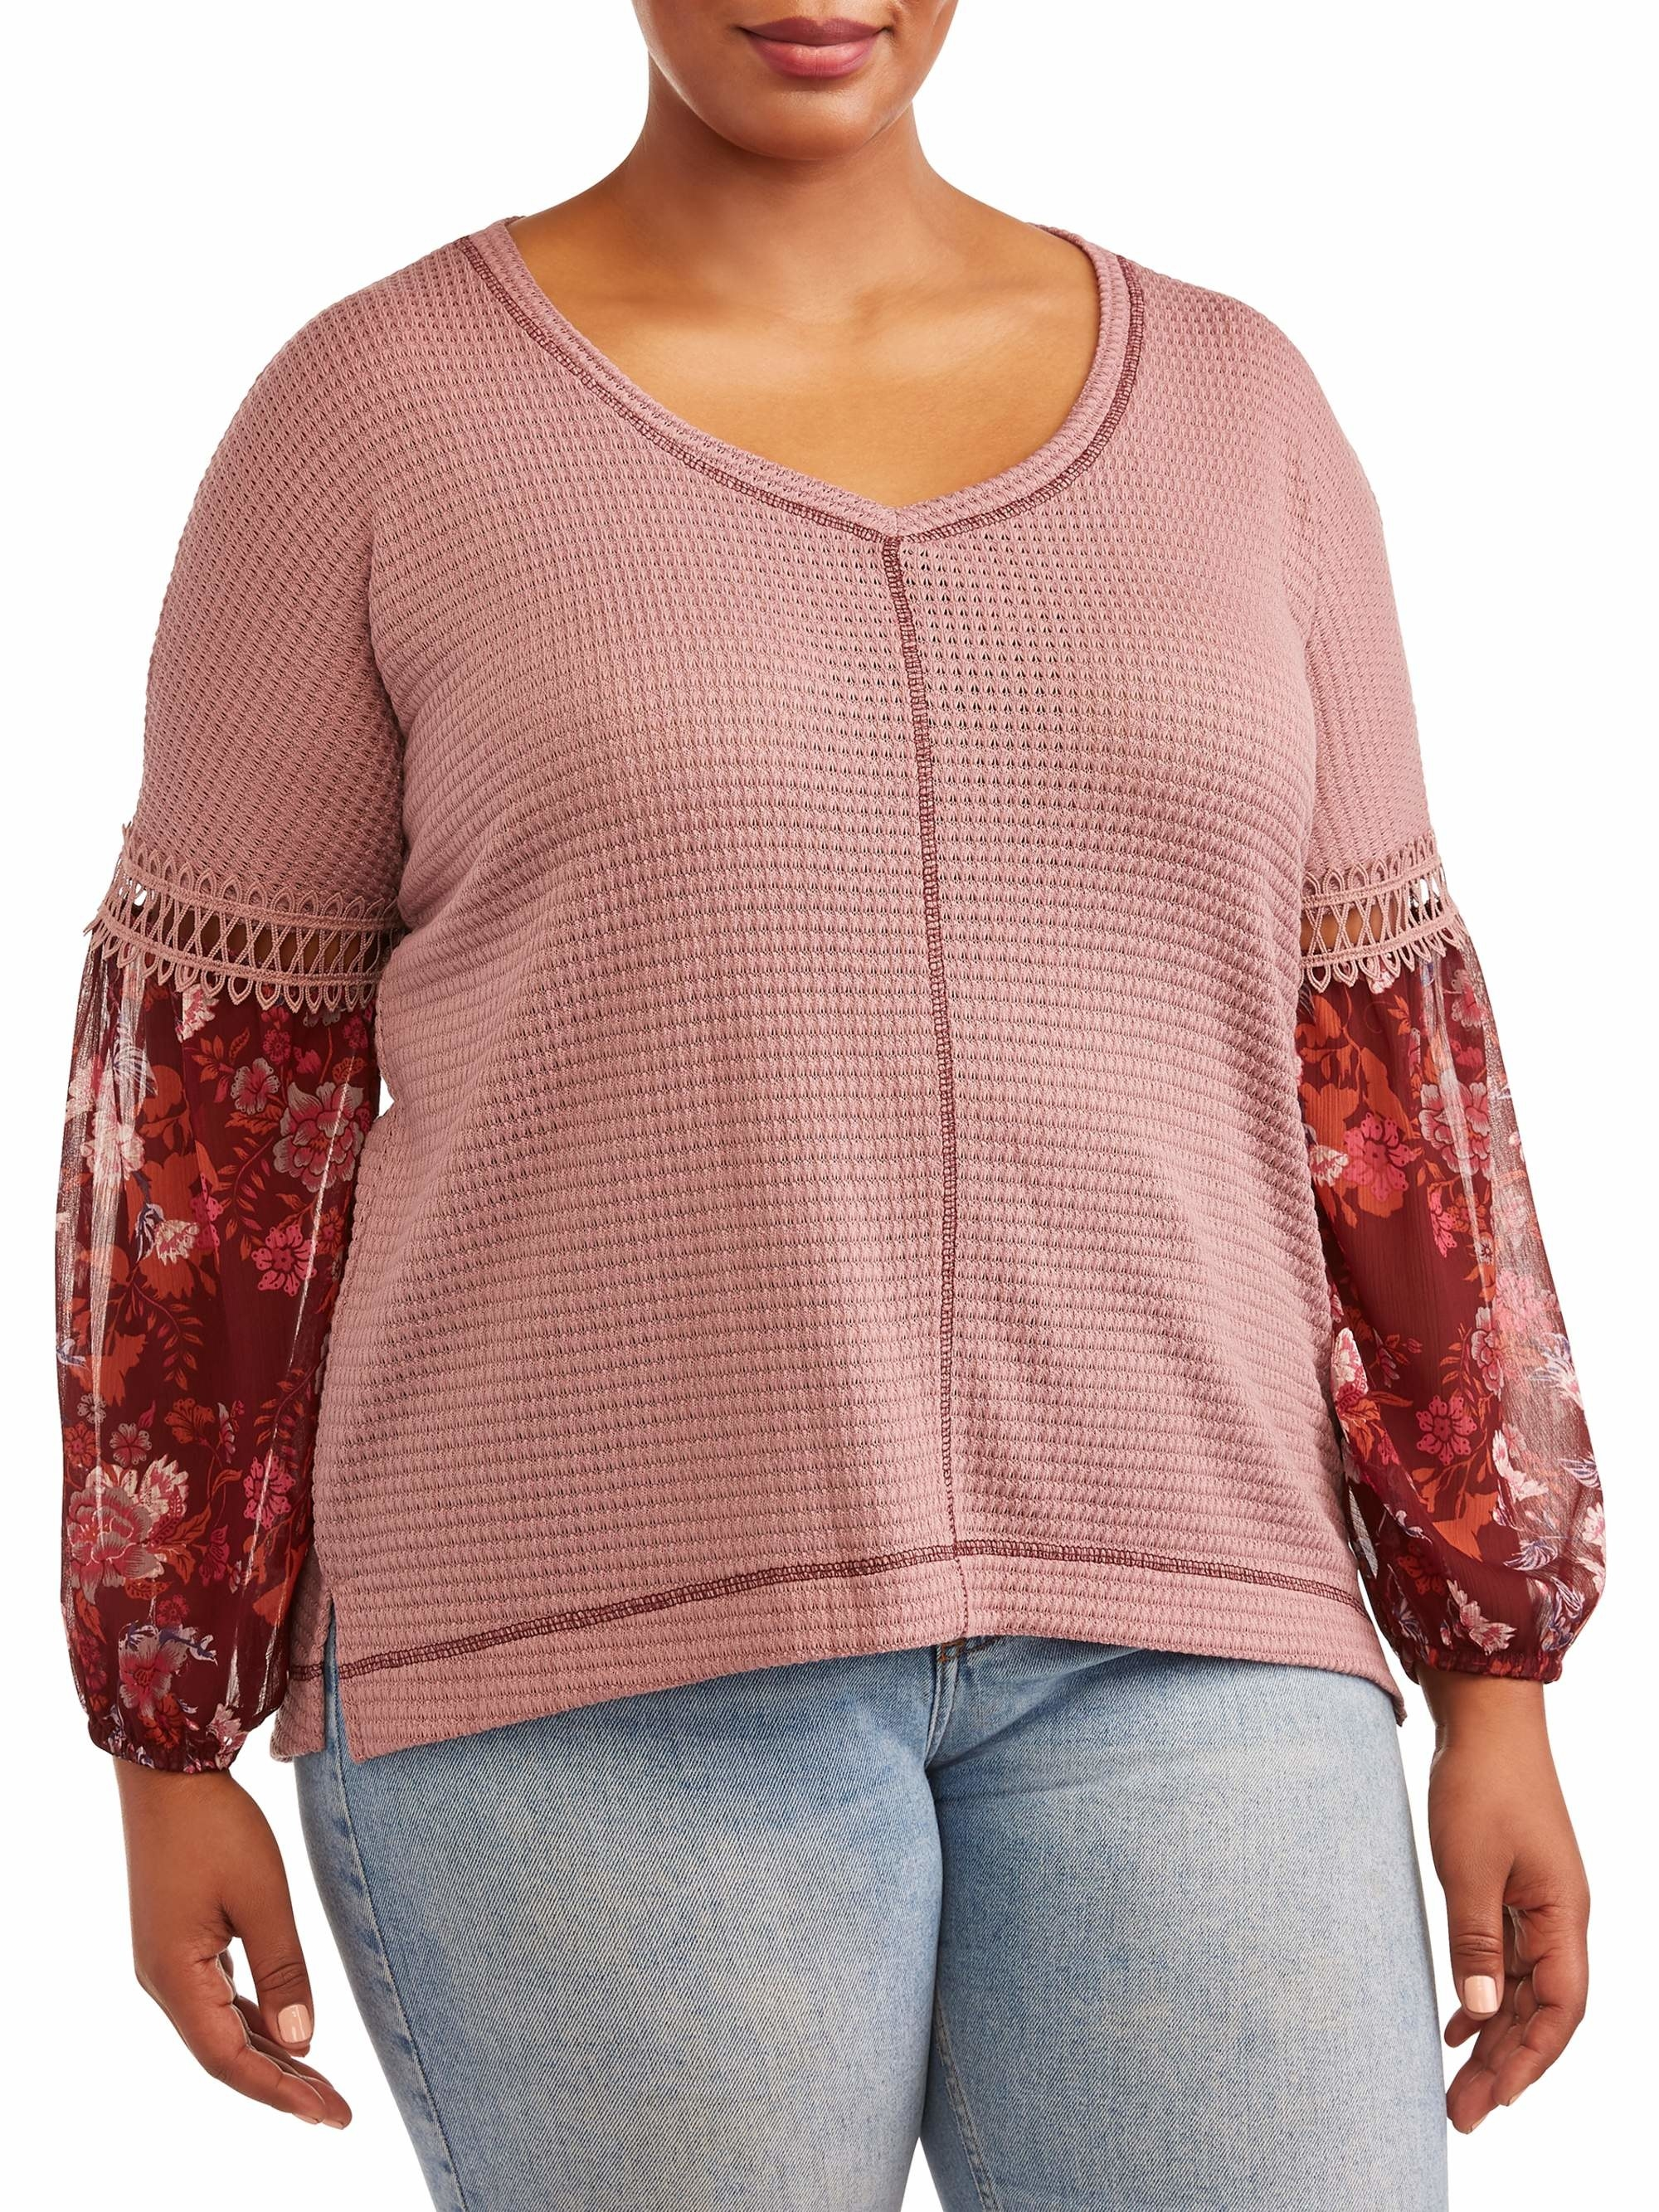 The pink top with red semi sheer floral sleeves